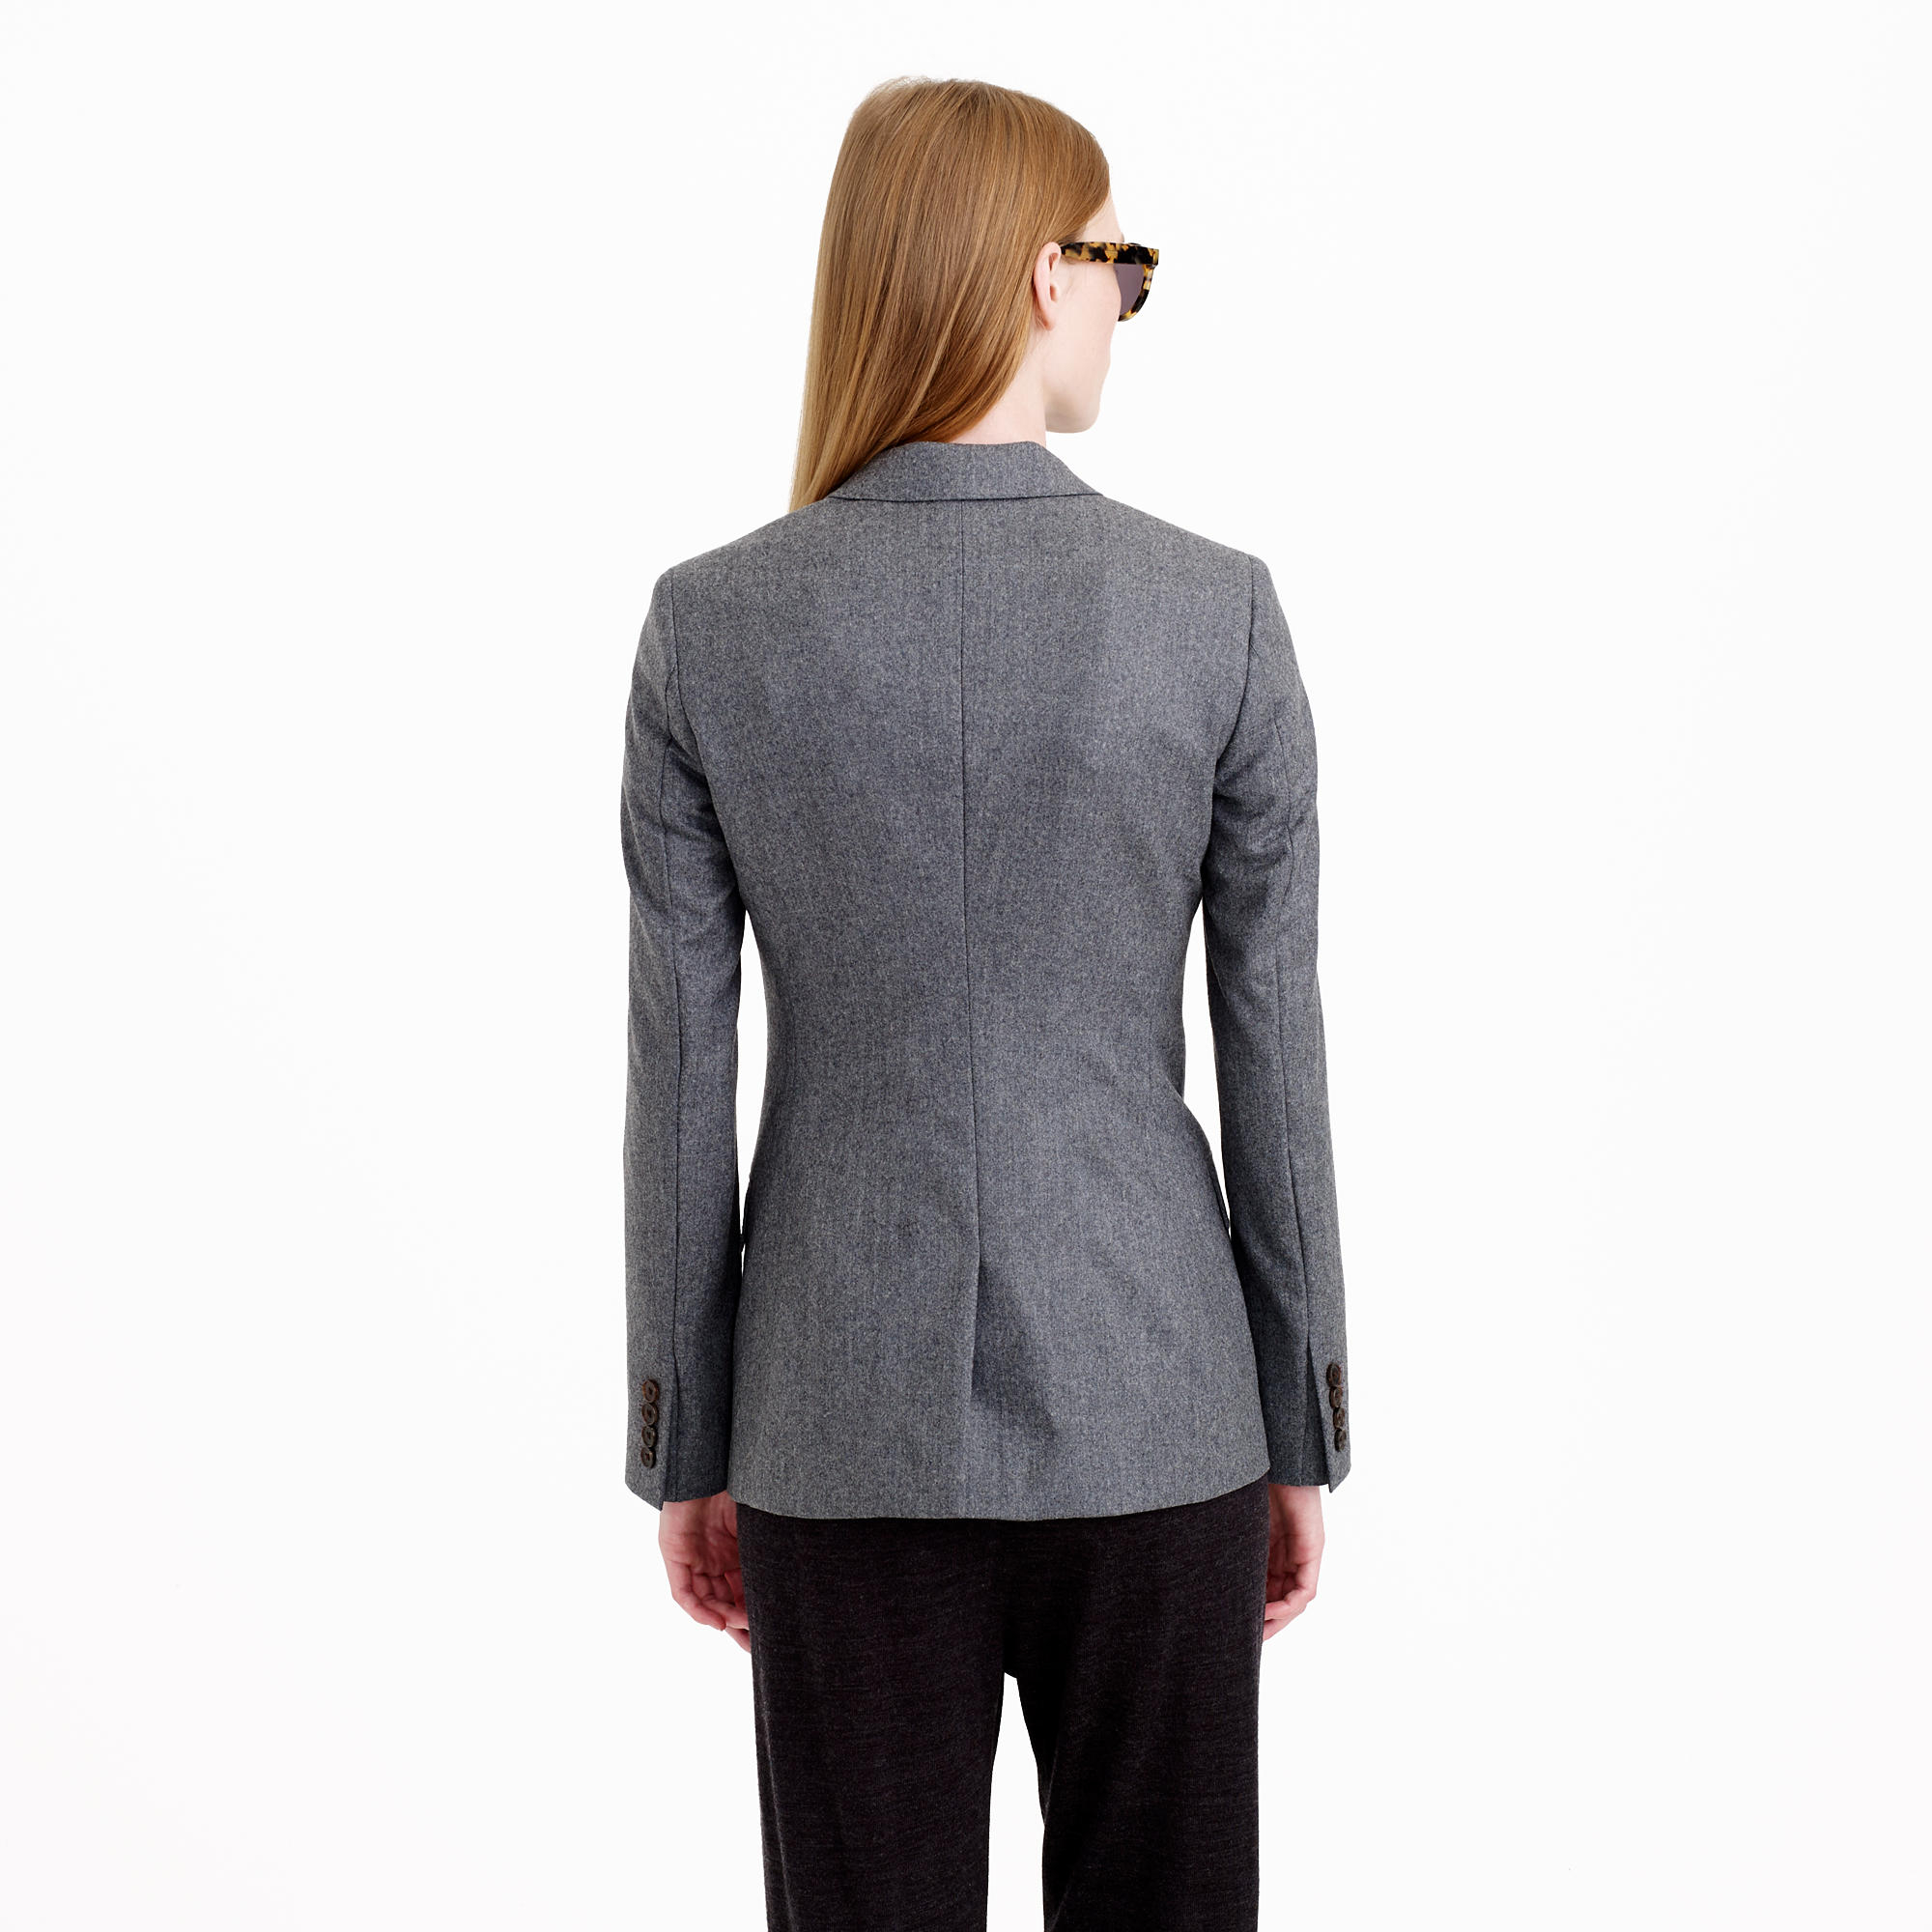 Find a great selection of women's blazers & jackets at hereuloadu5.ga Shop top brands like Vince Camuto, Topshop, Lafayette and more. Free shipping and returns.